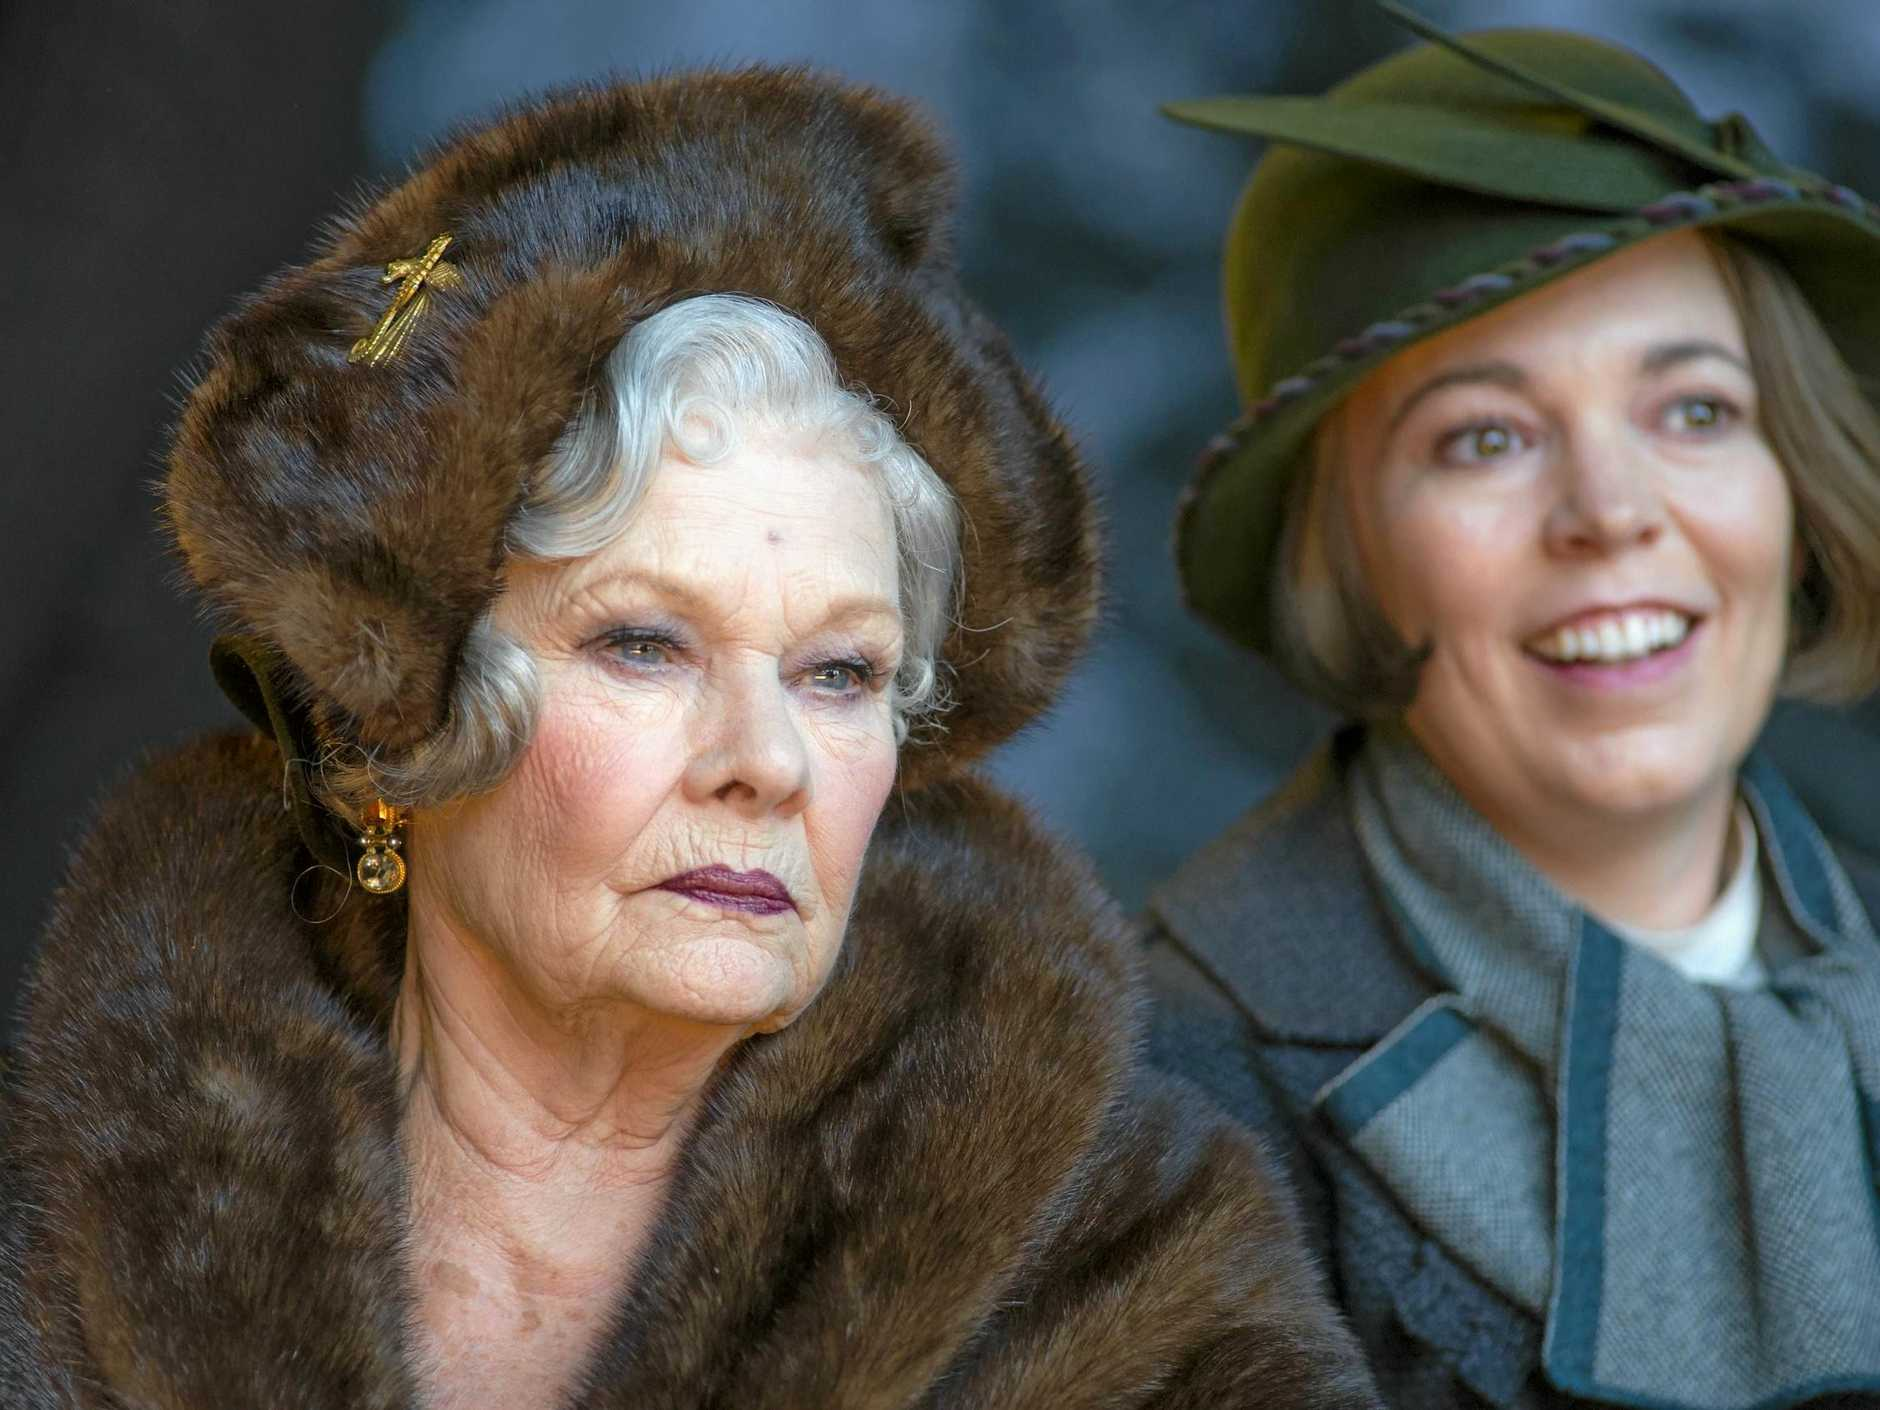 Judi Dench and Olivia Colman in a scene from the movie Murder on the Orient Express. Supplied by Twentieth Century Fox.